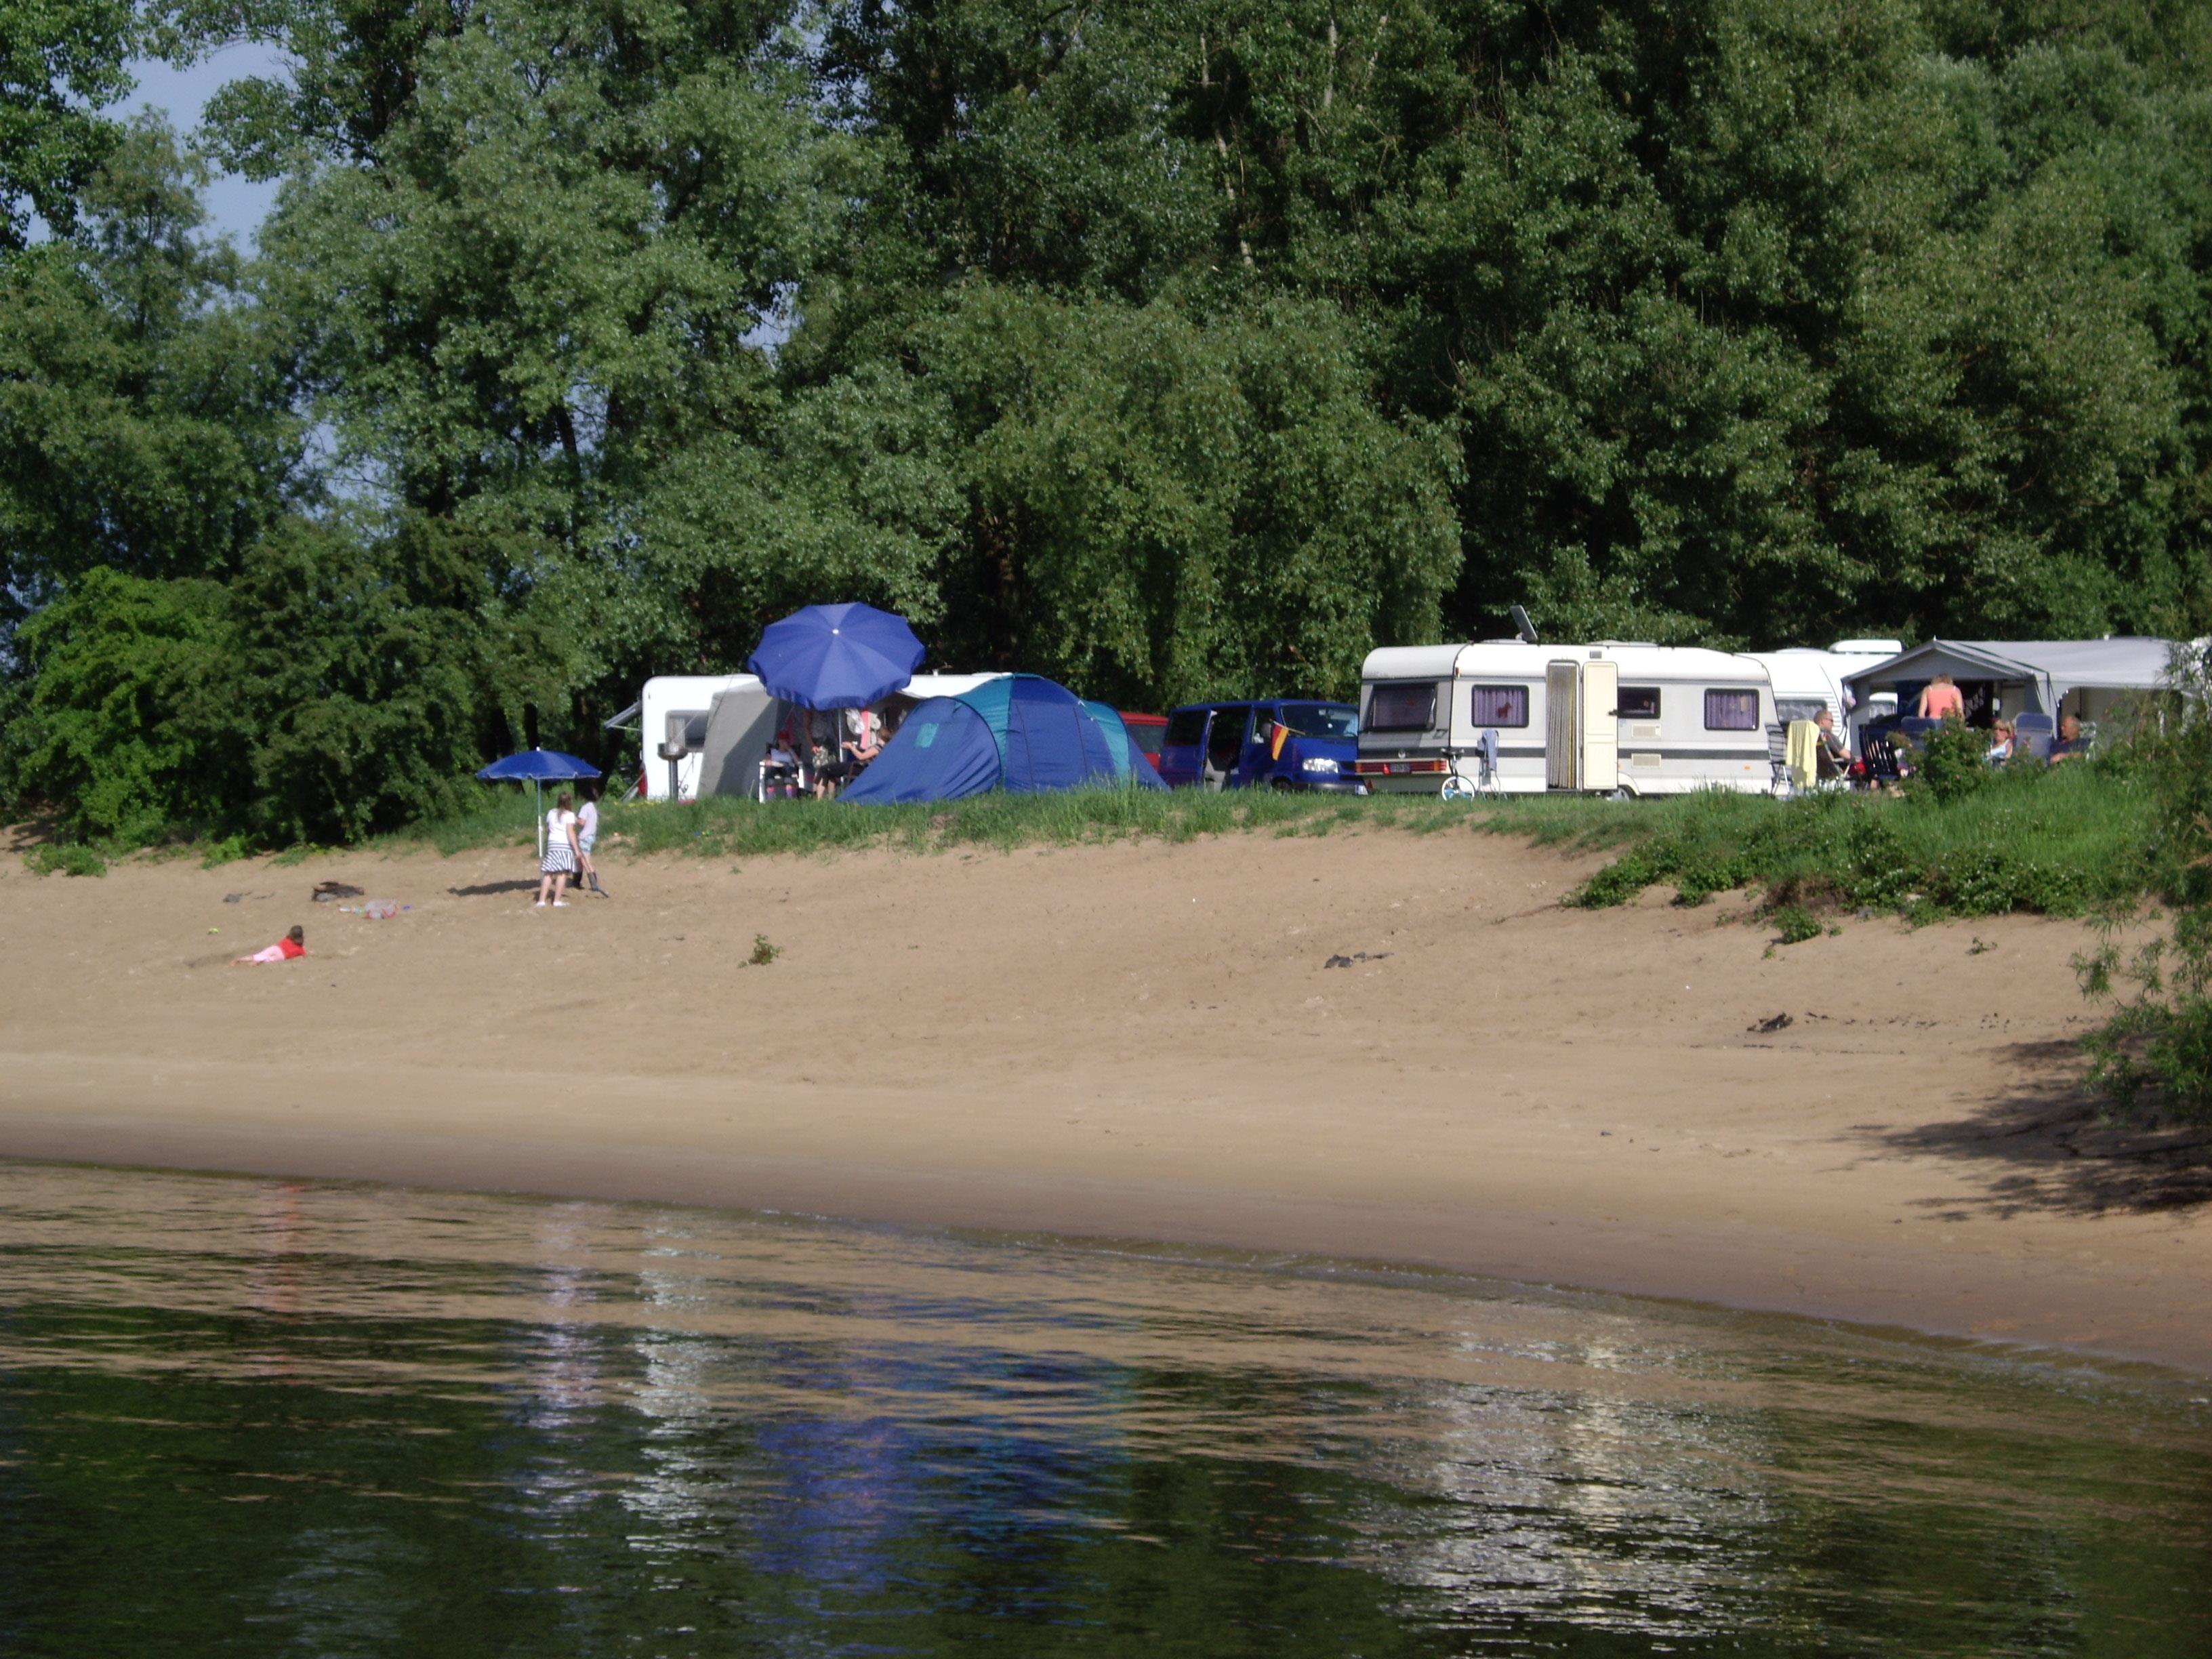 Emplacement - Emplacement Tente - Camping Stover Strand International Kloodt